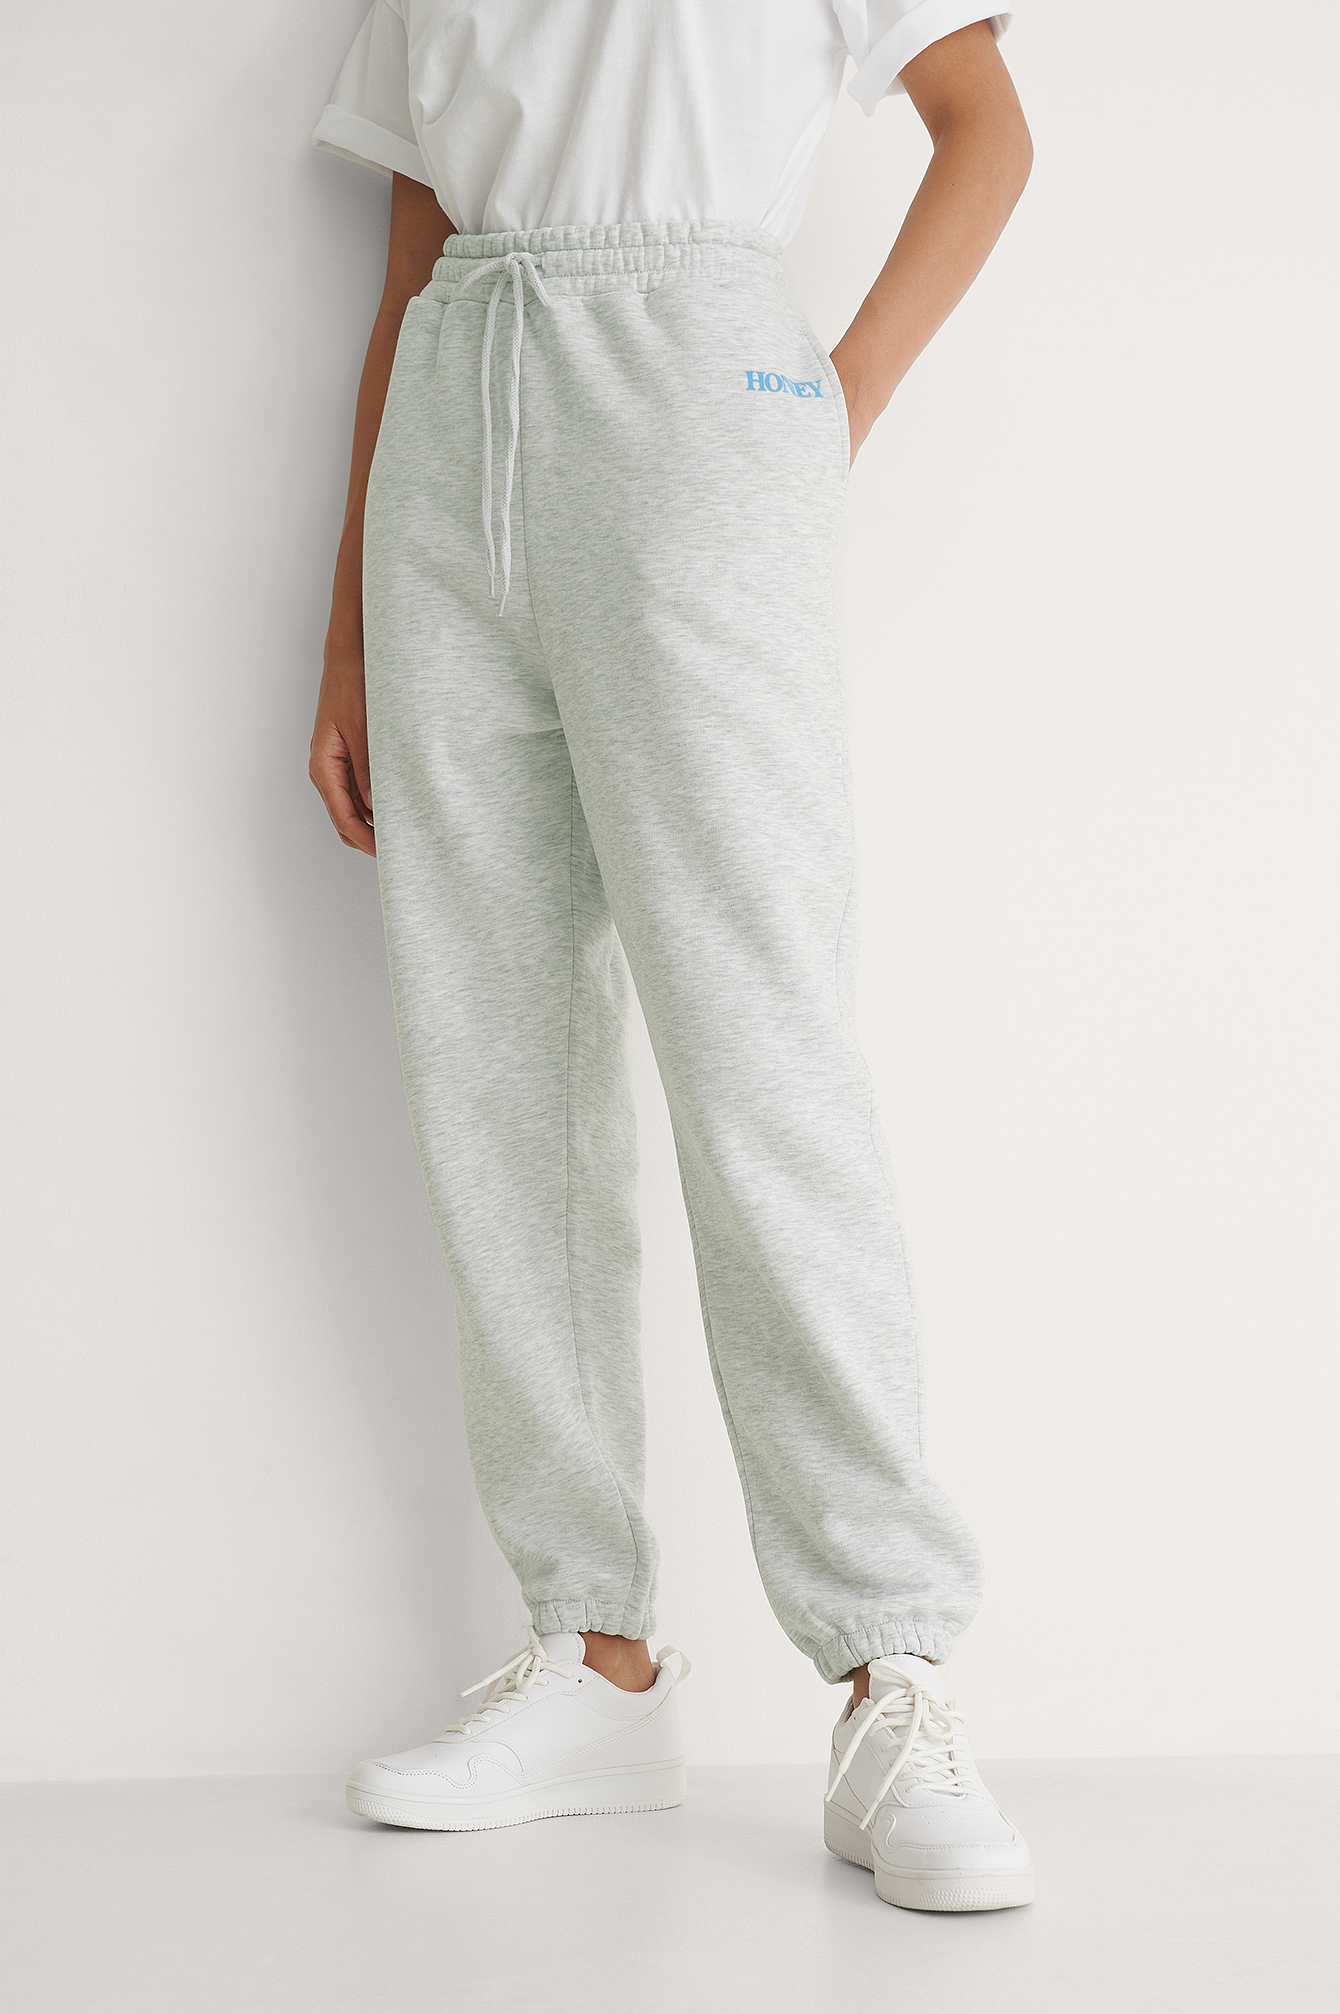 Grey Melange Pantalon De Survêtement